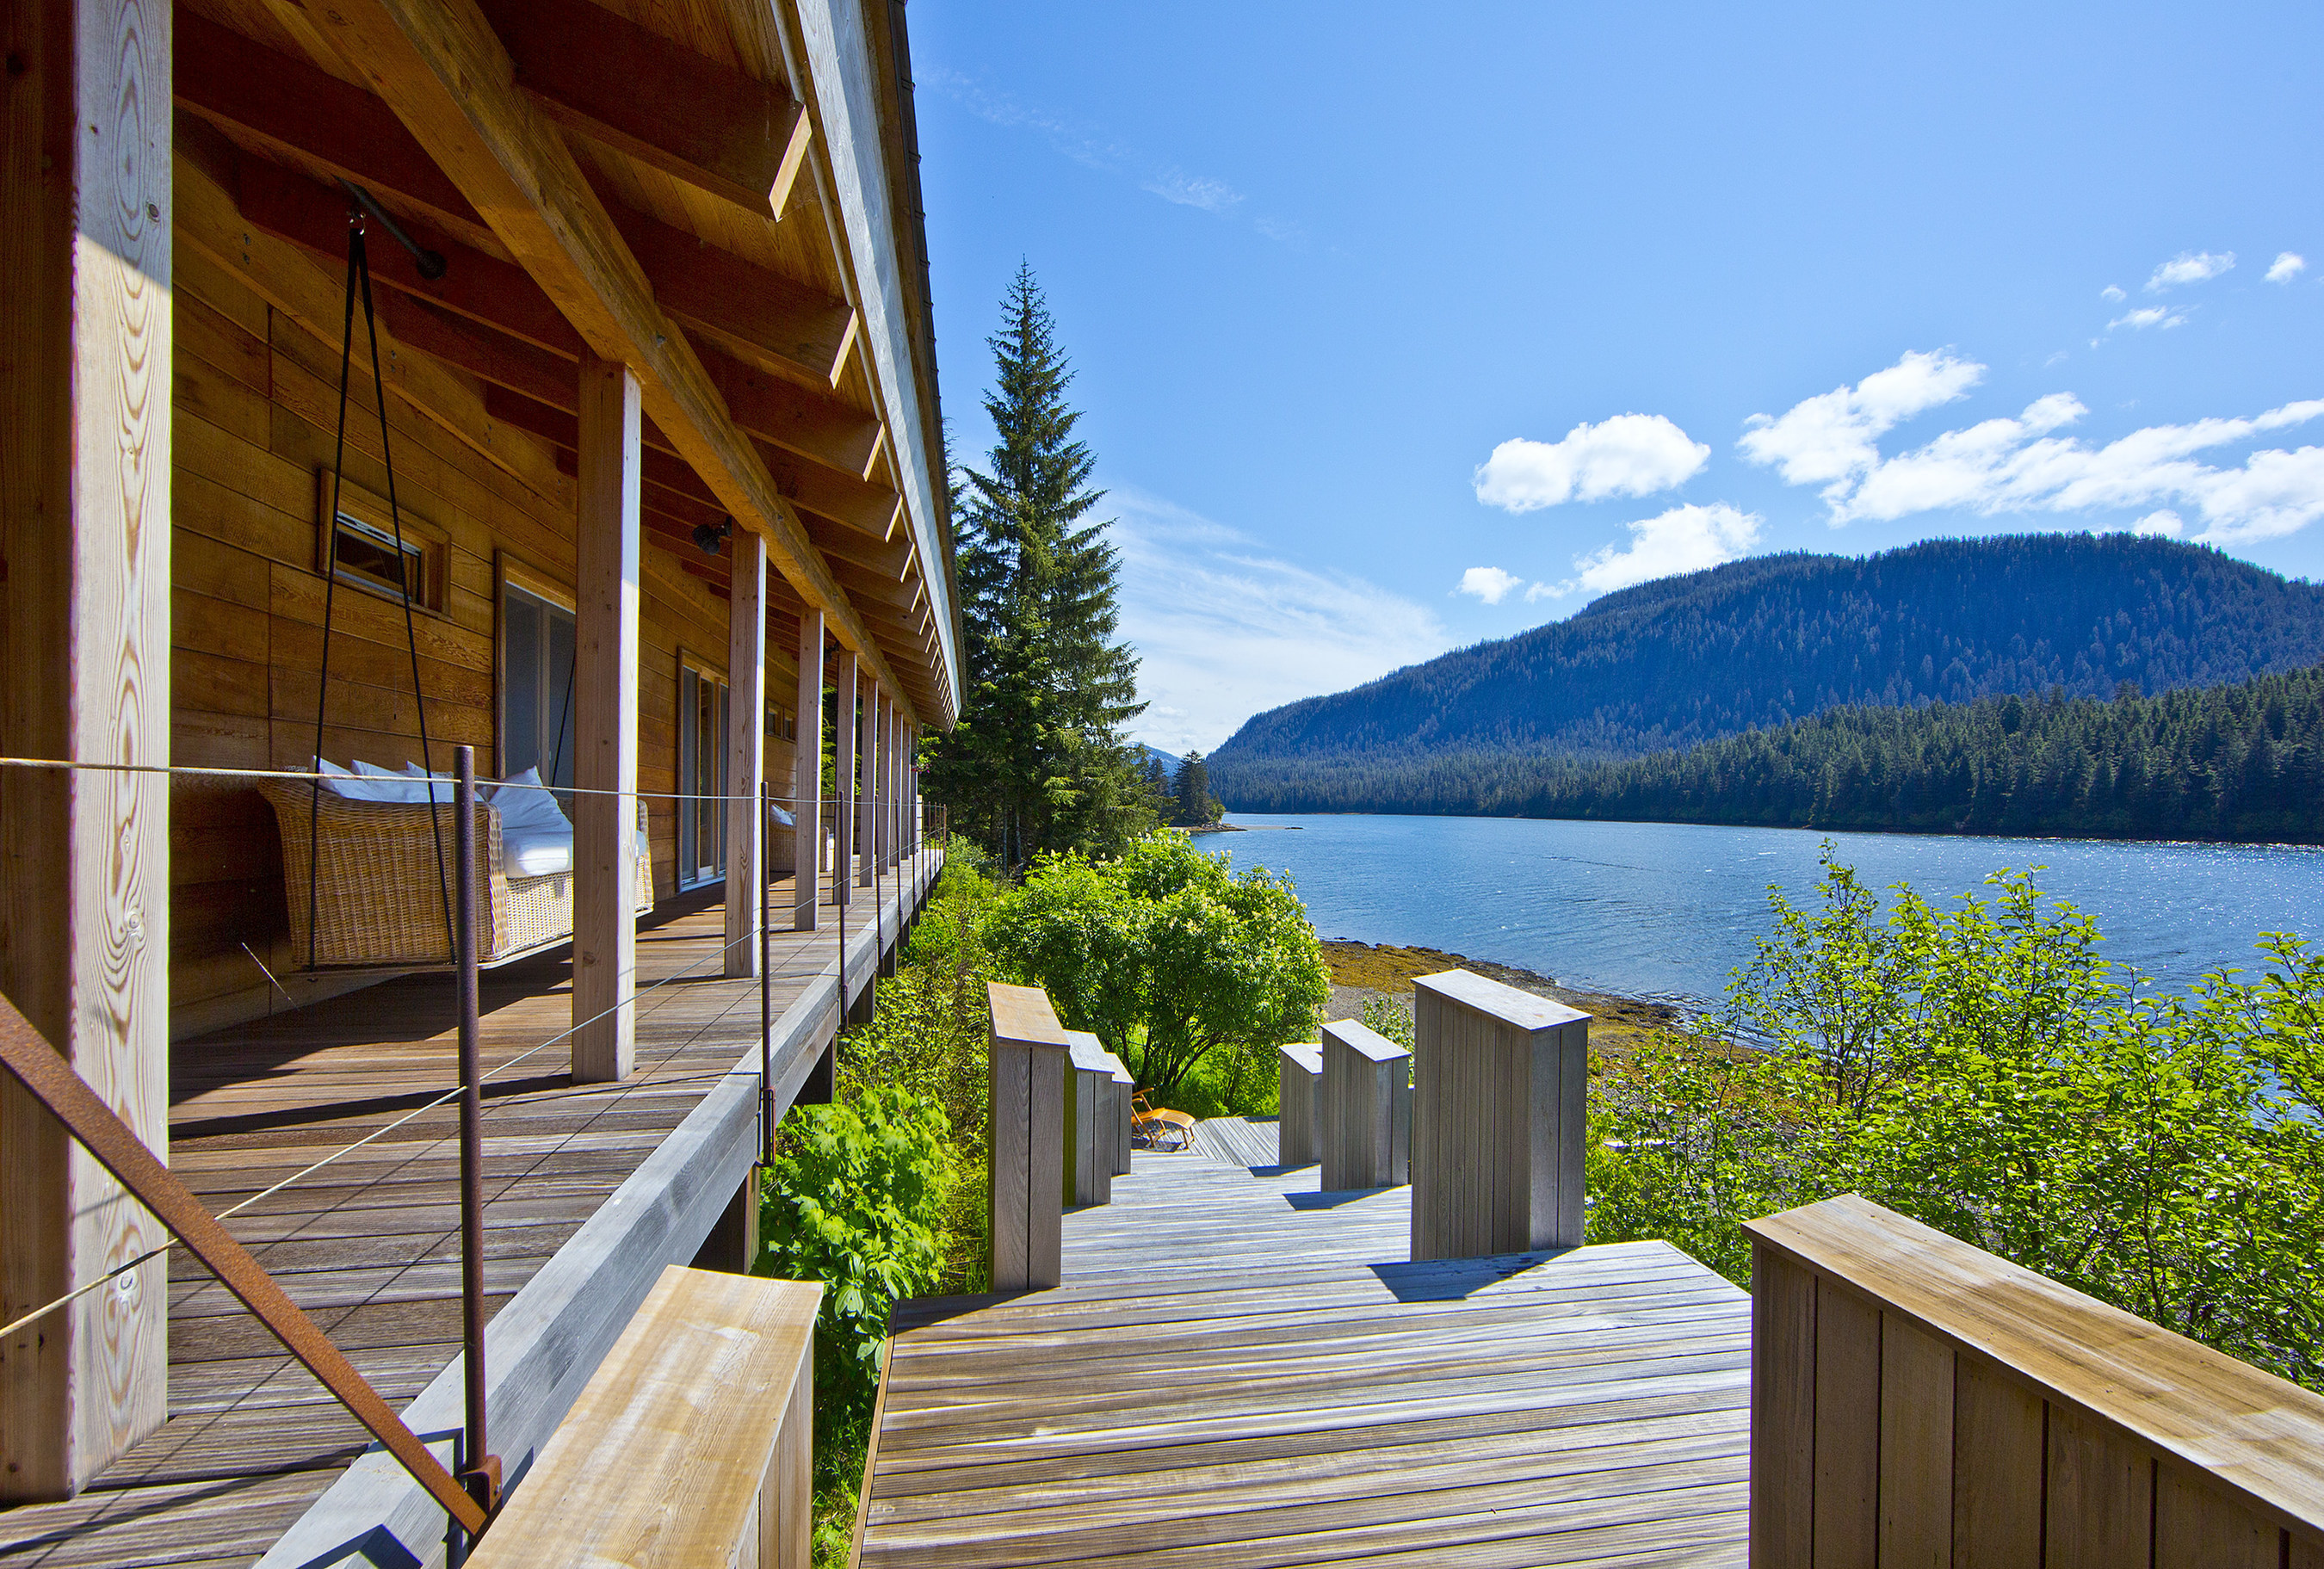 Concierge Auctions To Sell Alaskan Waterfront Retreat On August 18th